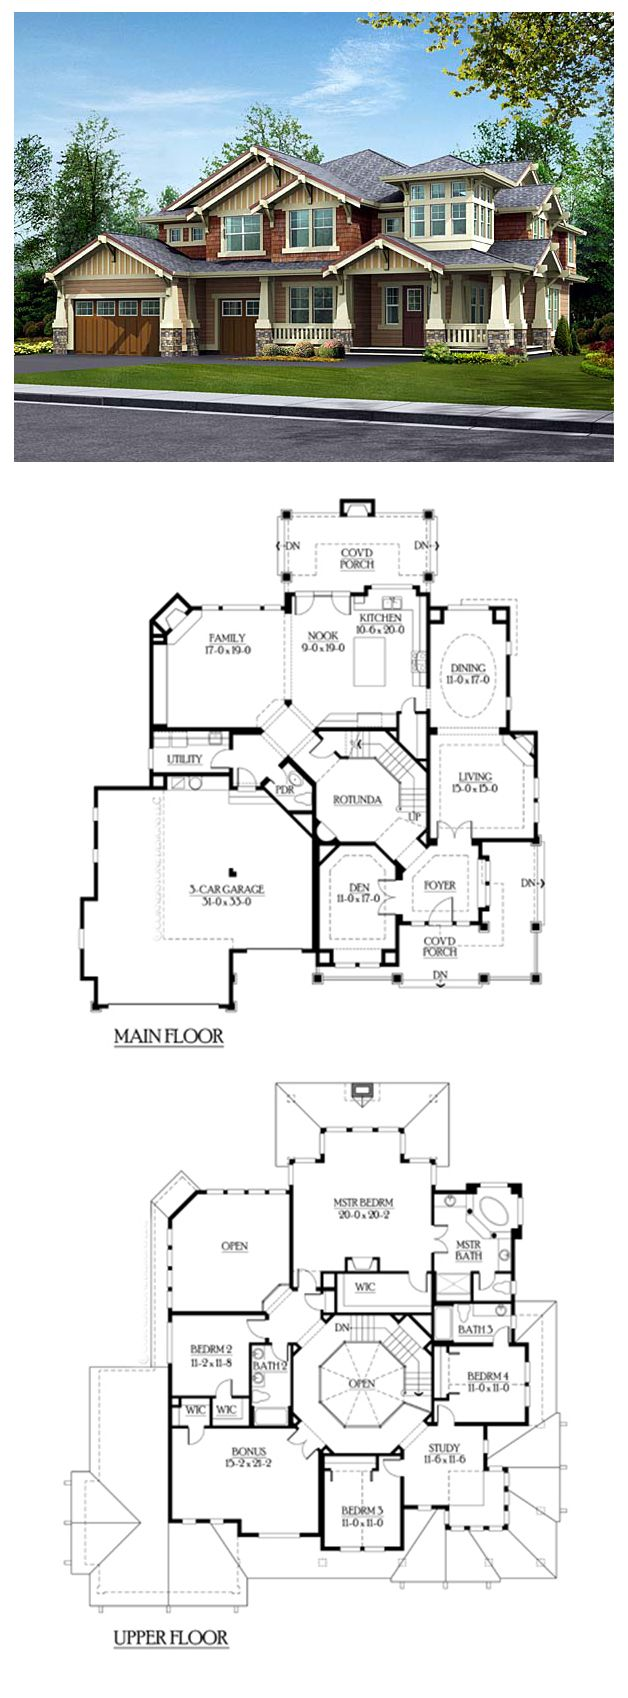 best 25 house floor plans ideas on pinterest house blueprints best 25 house floor plans ideas on pinterest house blueprints home floor plans and architectural floor plans